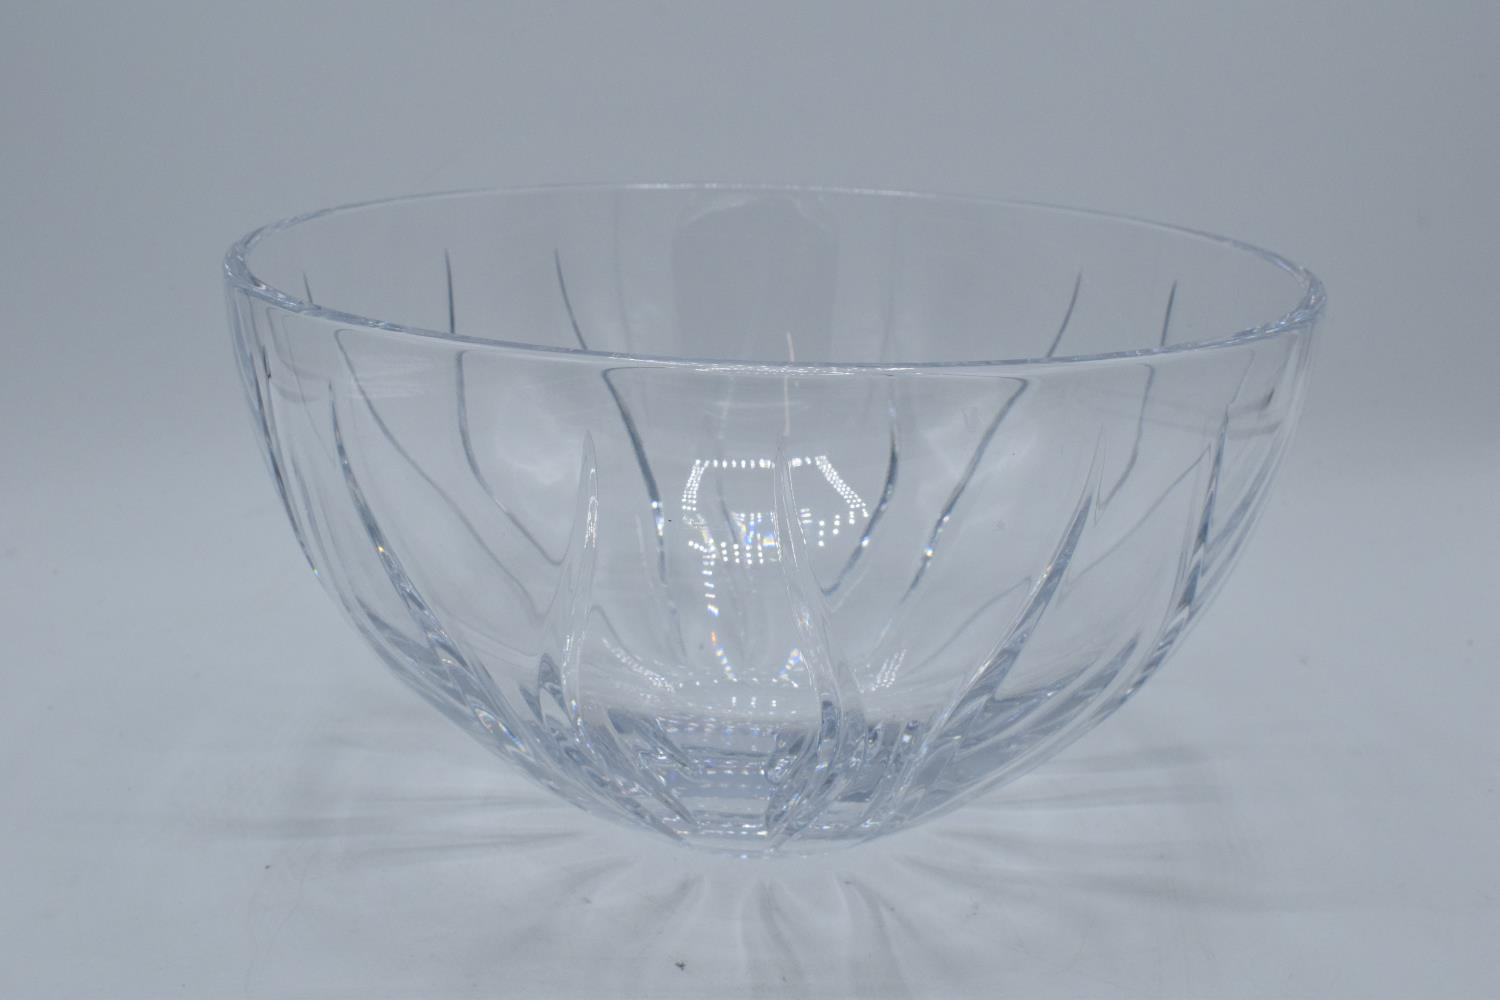 Waterford Ardon Tonn bowl. In good condition with no obvious damage or restoration. Some